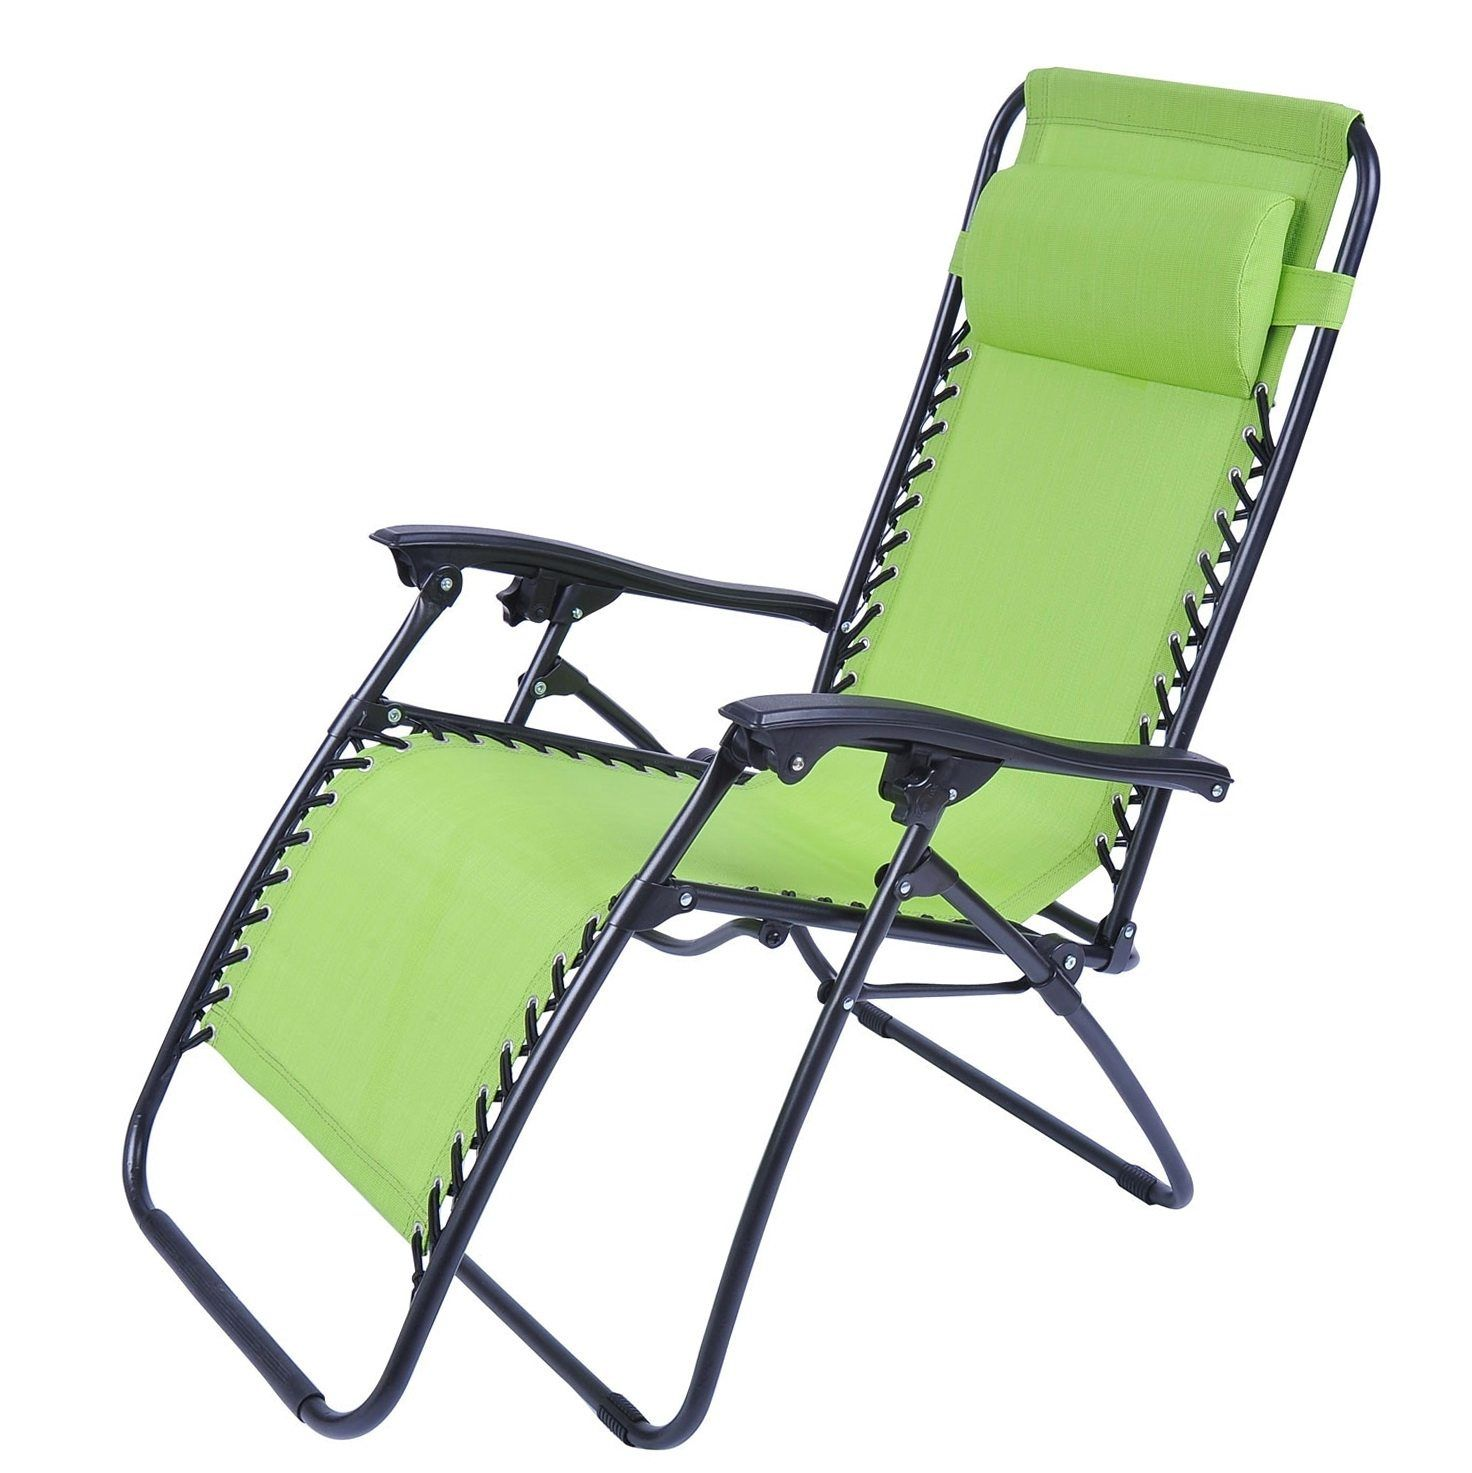 Folding outdoor lounge chair - Lounge Chair Outdoor Folding Folding Chaise Lounge Chair Patio Outdoor